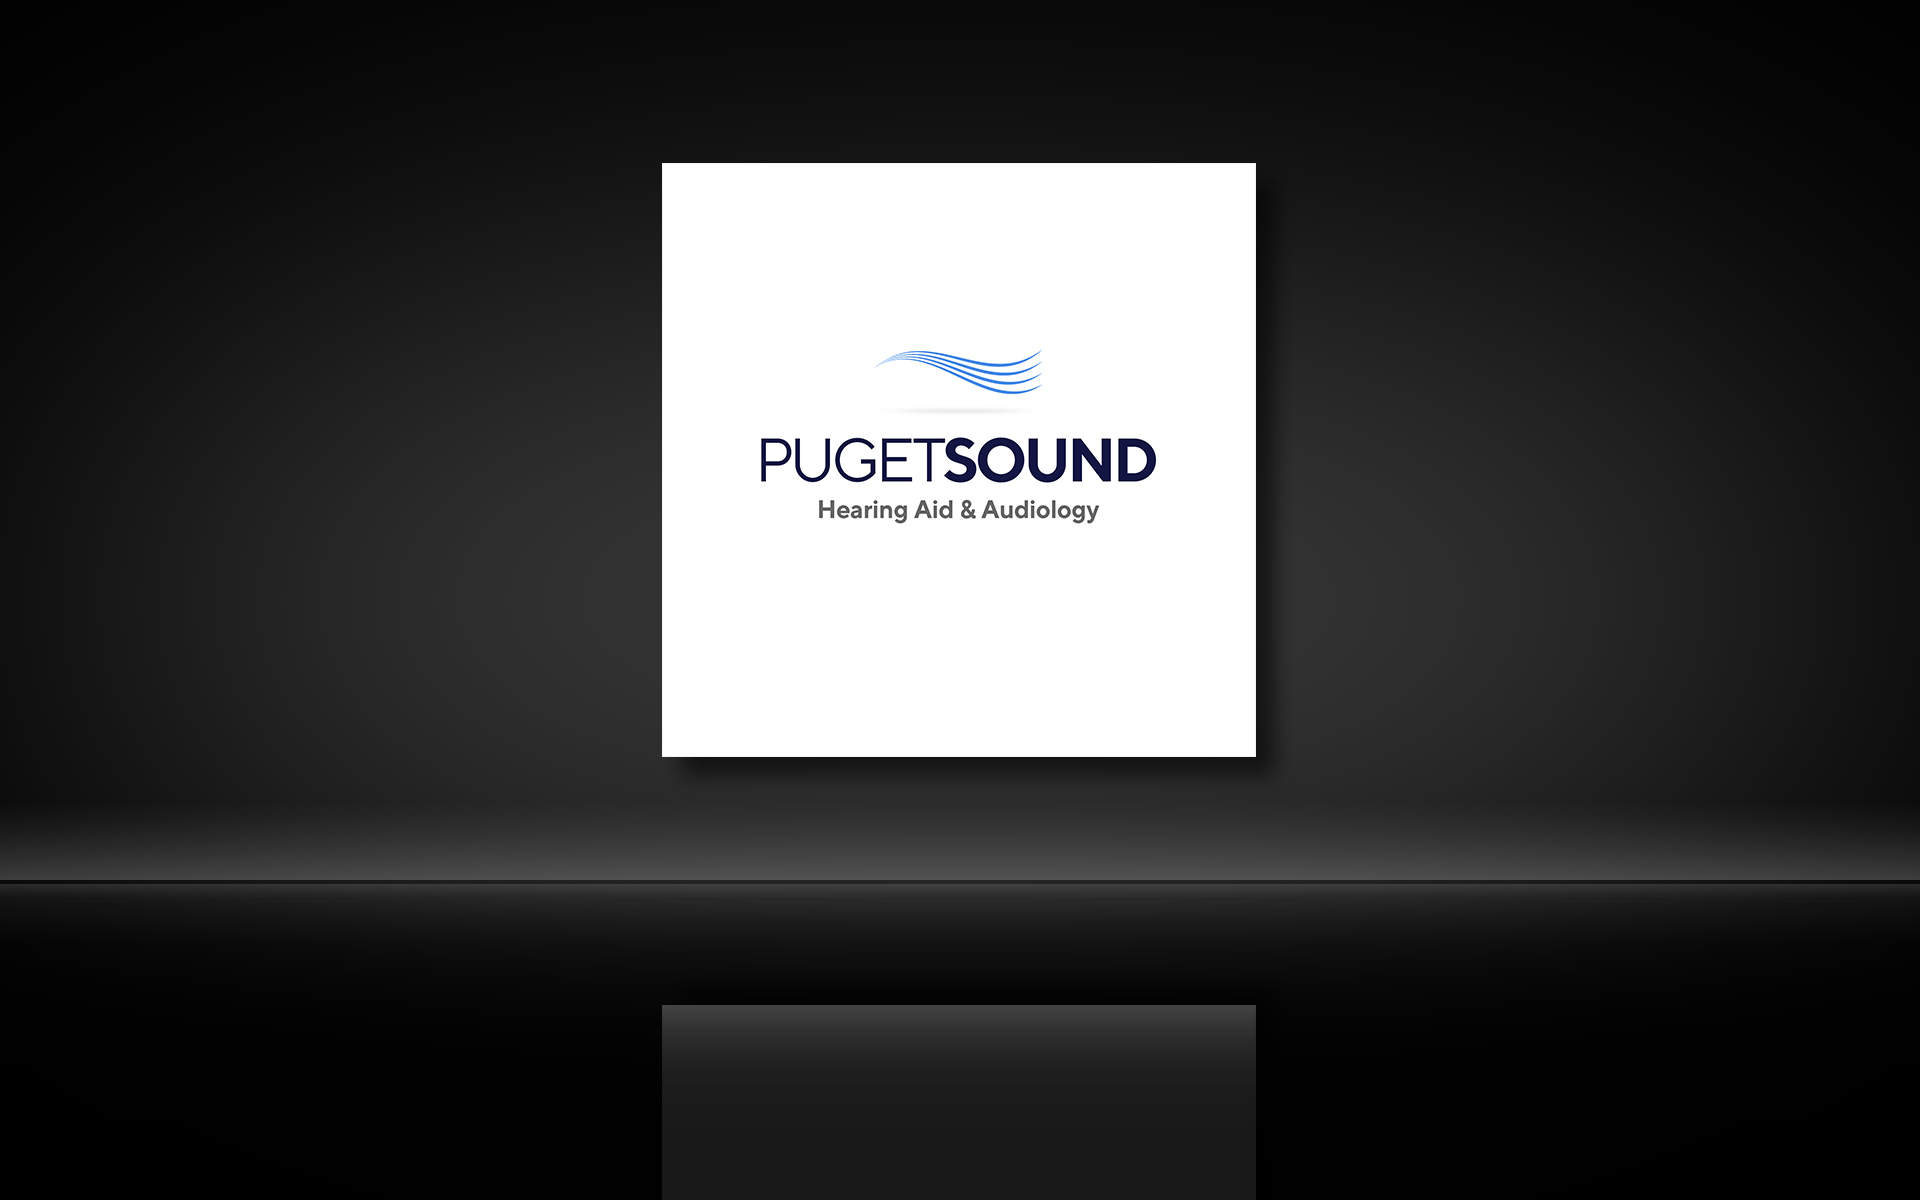 Puget Sound Hearing and Audiology Logo by Graham Hnedak Brand G Creative gallery addition 03 June 2019.jpg